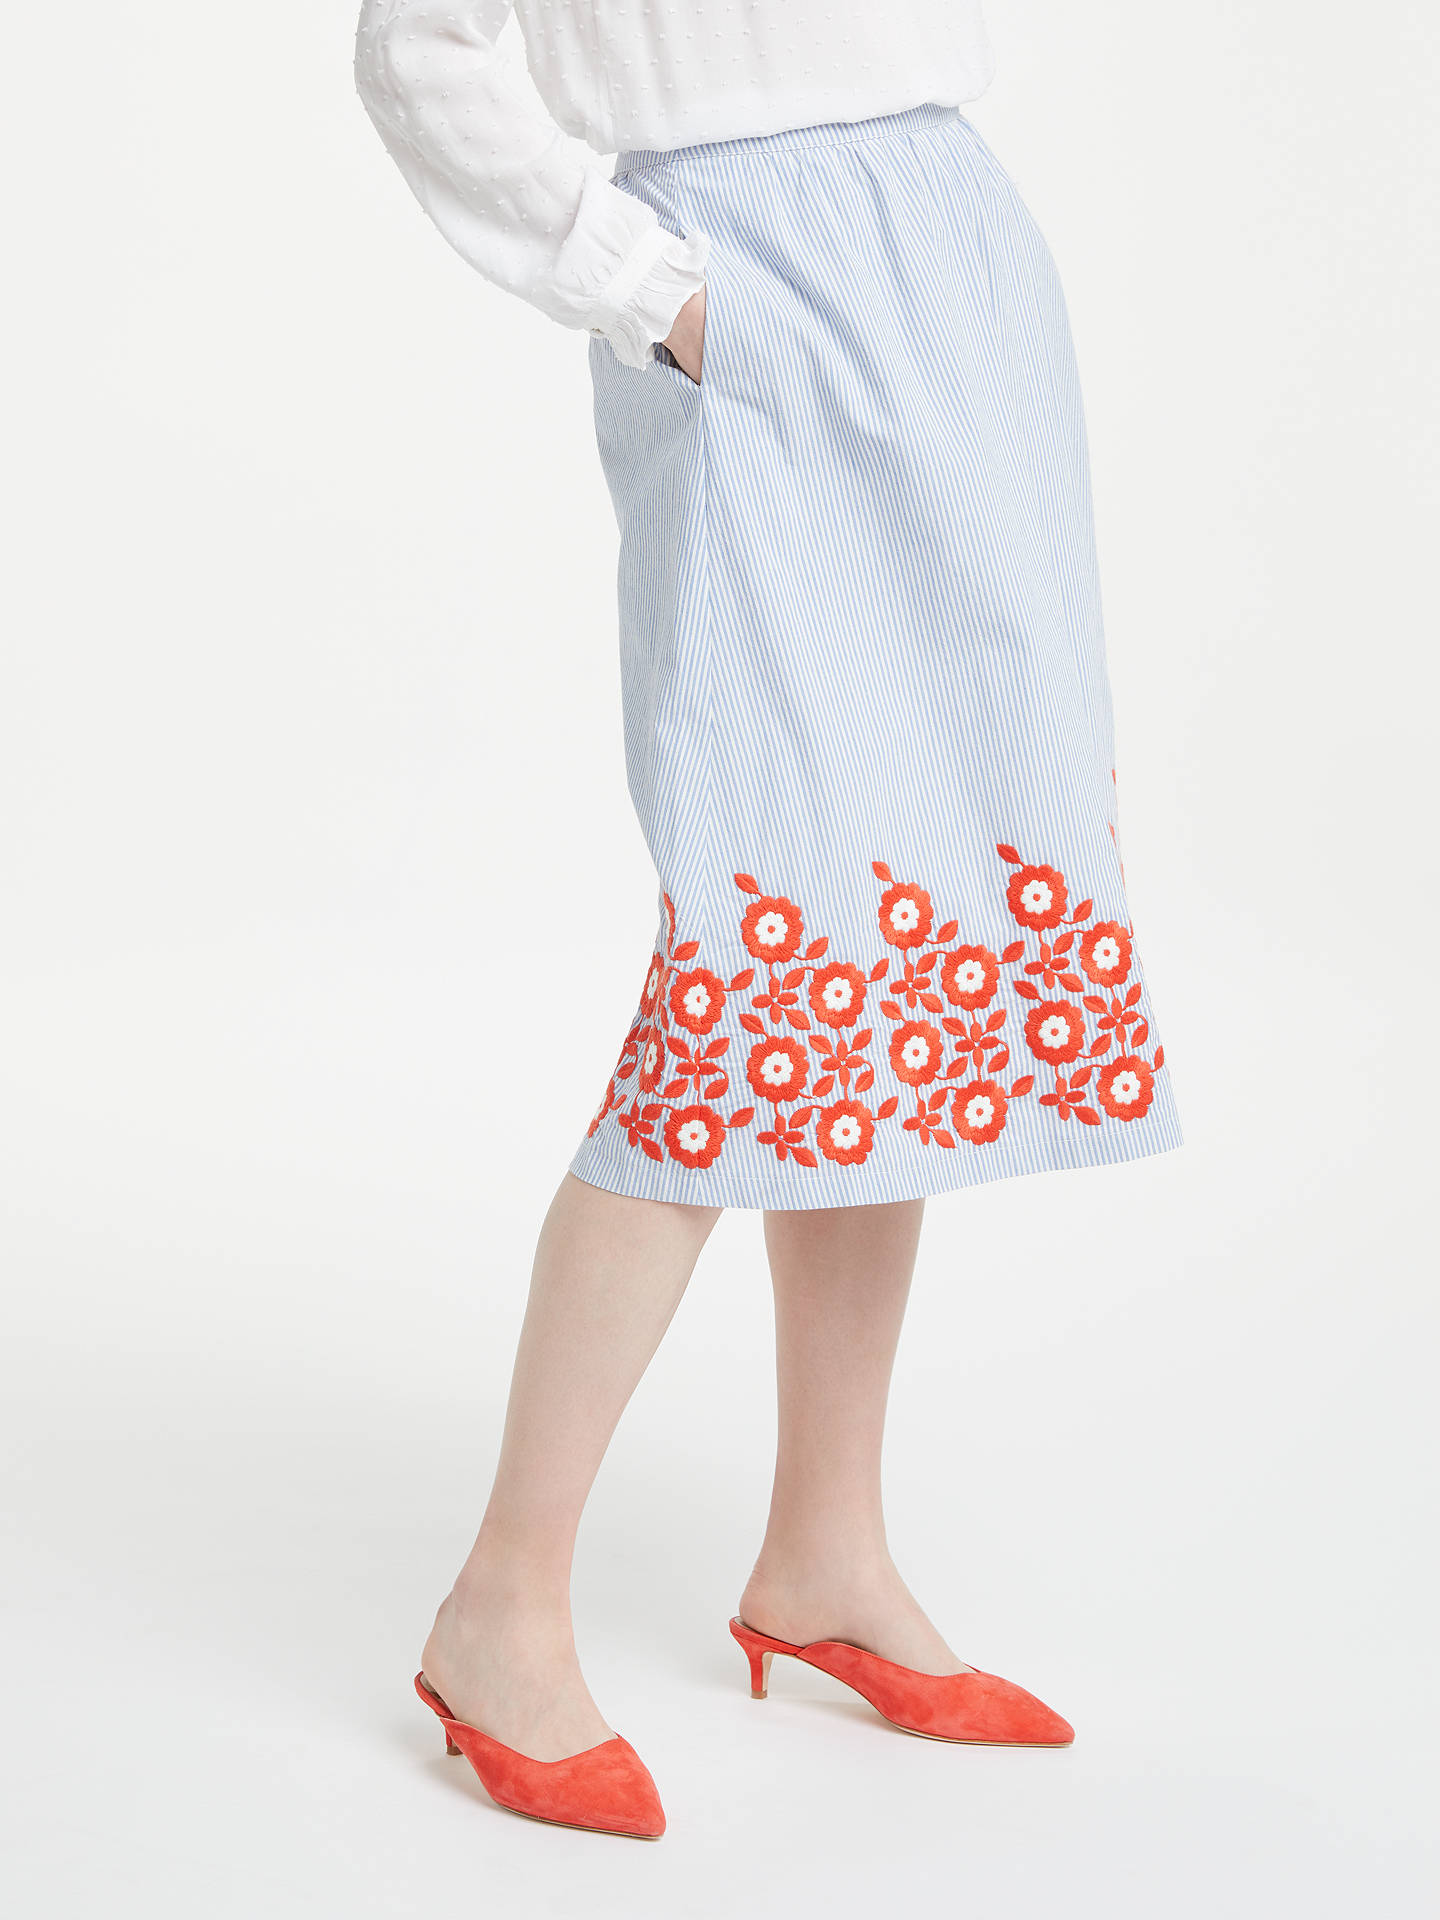 BuyBoden Haidee Embroidered Skirt, Blue and Ivory Stripe, 14 Online at johnlewis.com